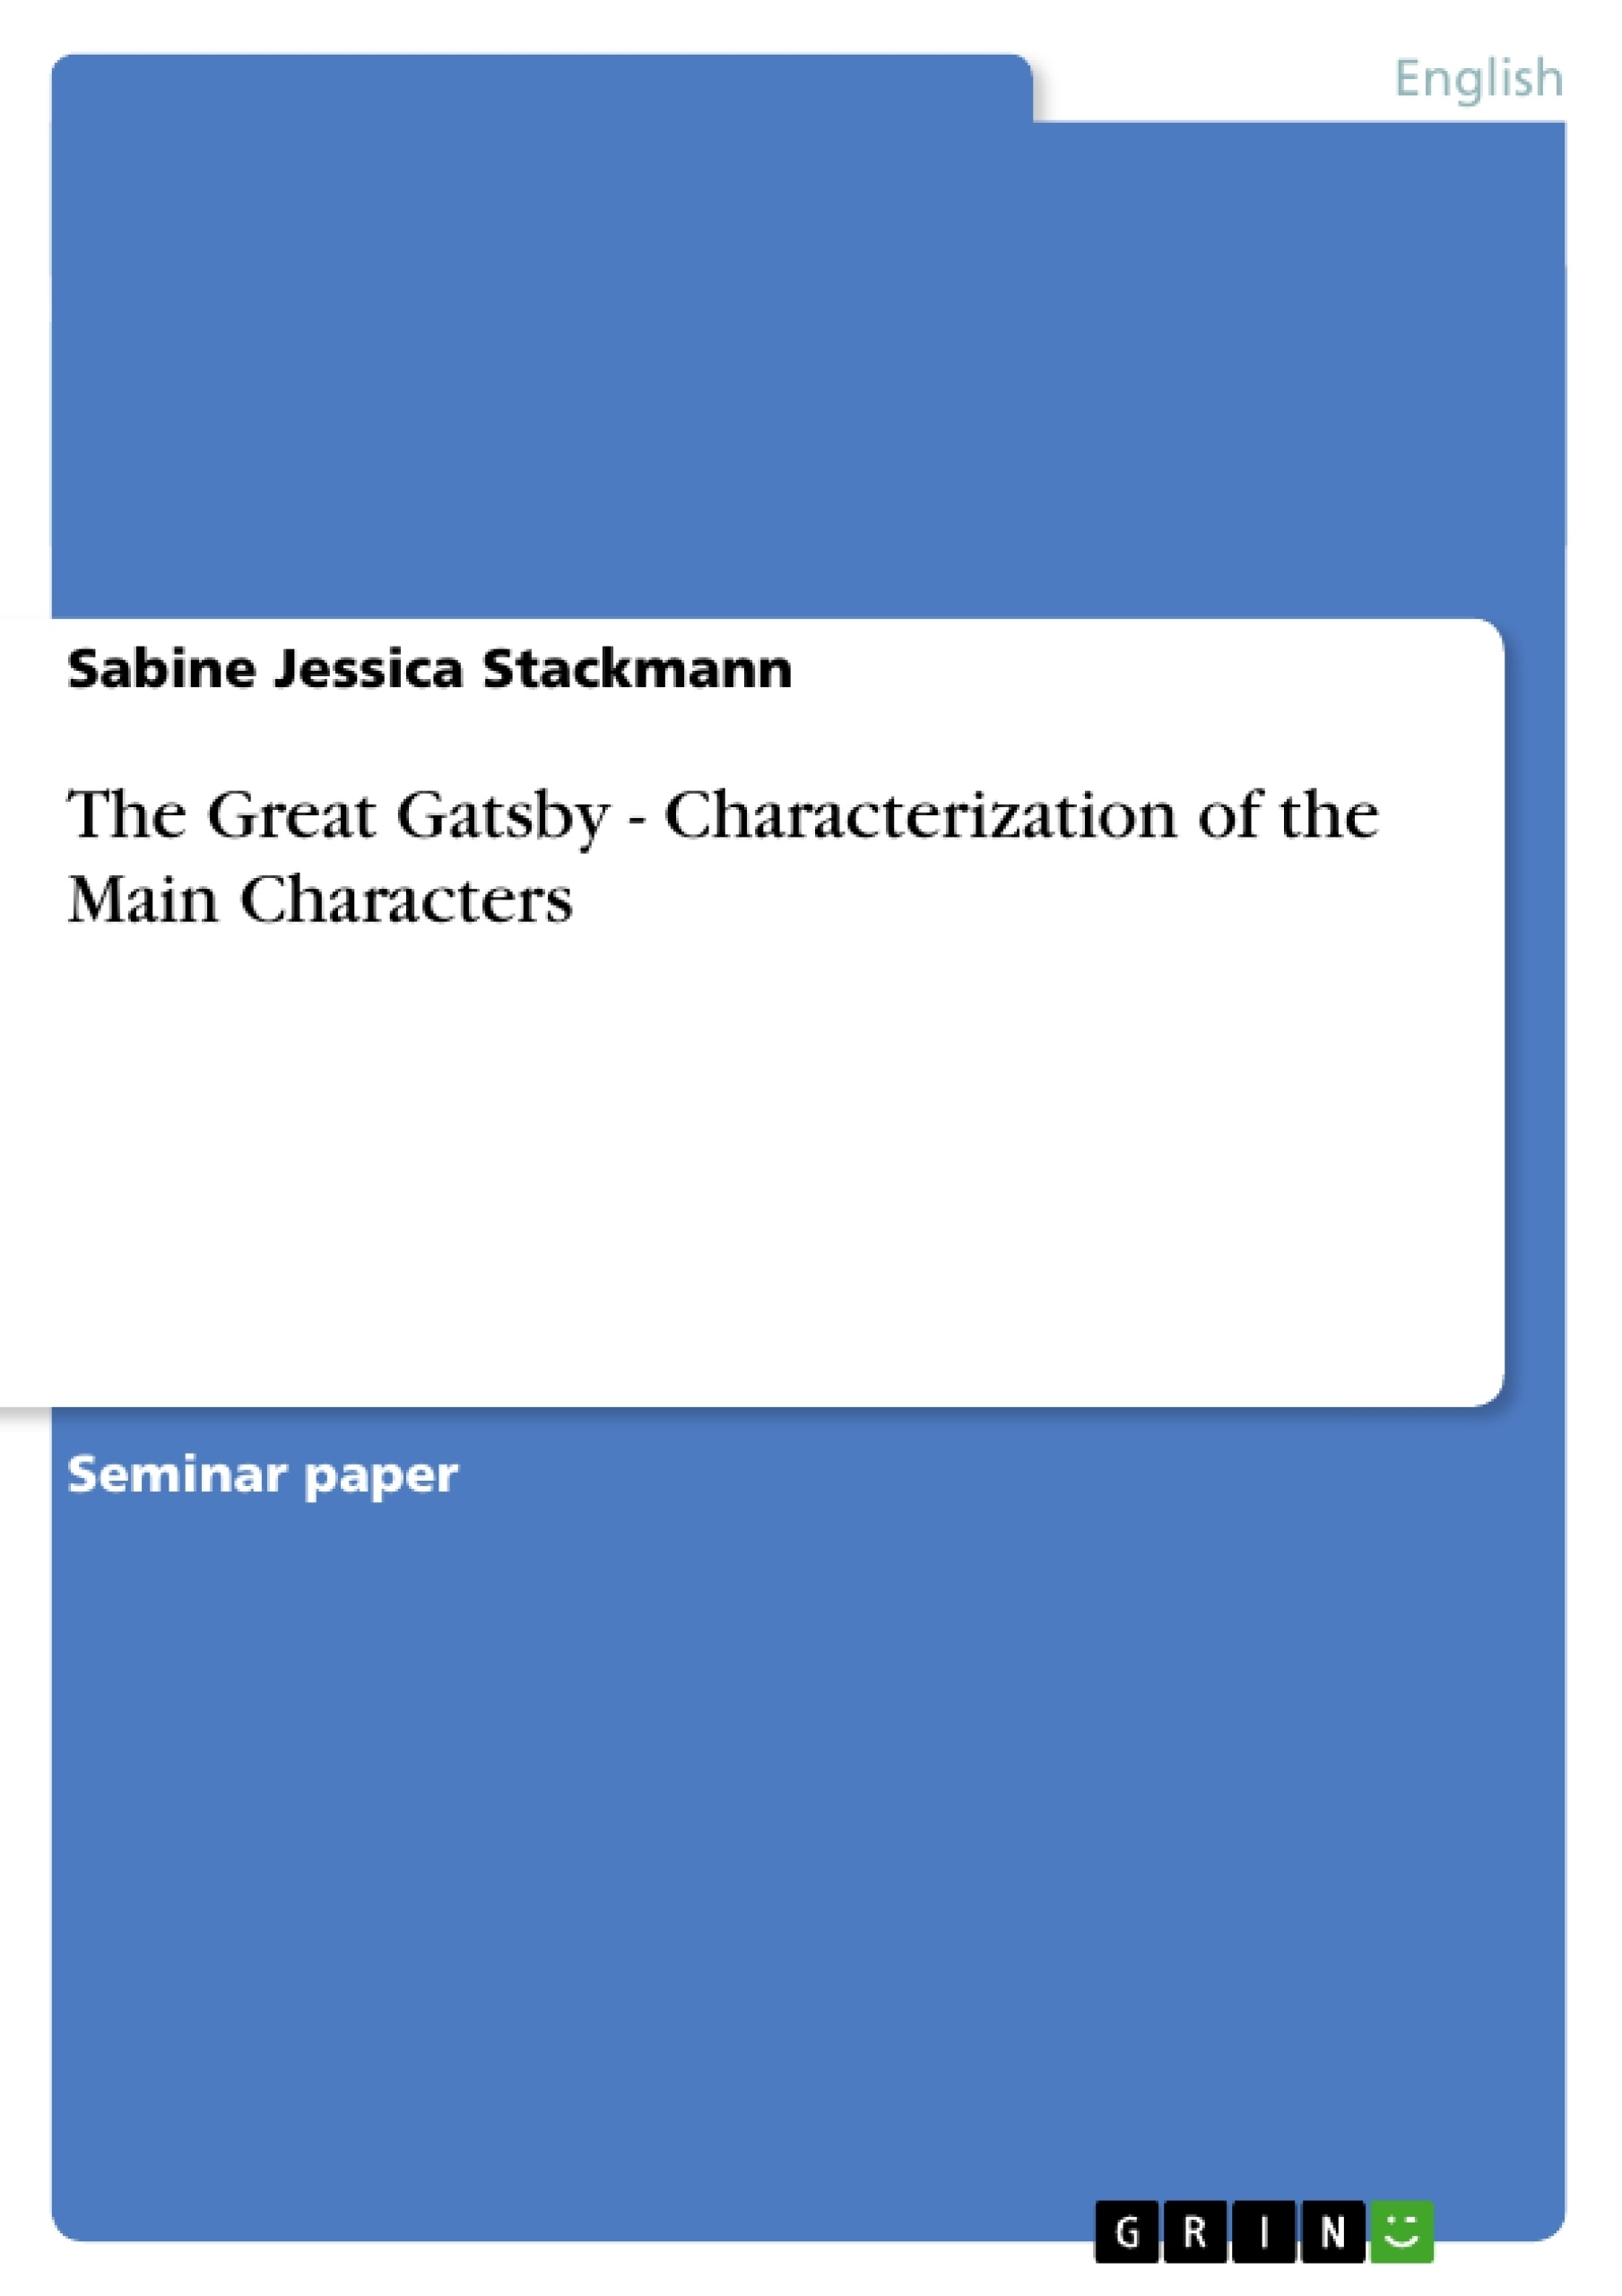 the great gatsby characterization of the main characters the great gatsby characterization of the main characters publish your master s thesis bachelor s thesis essay or term paper